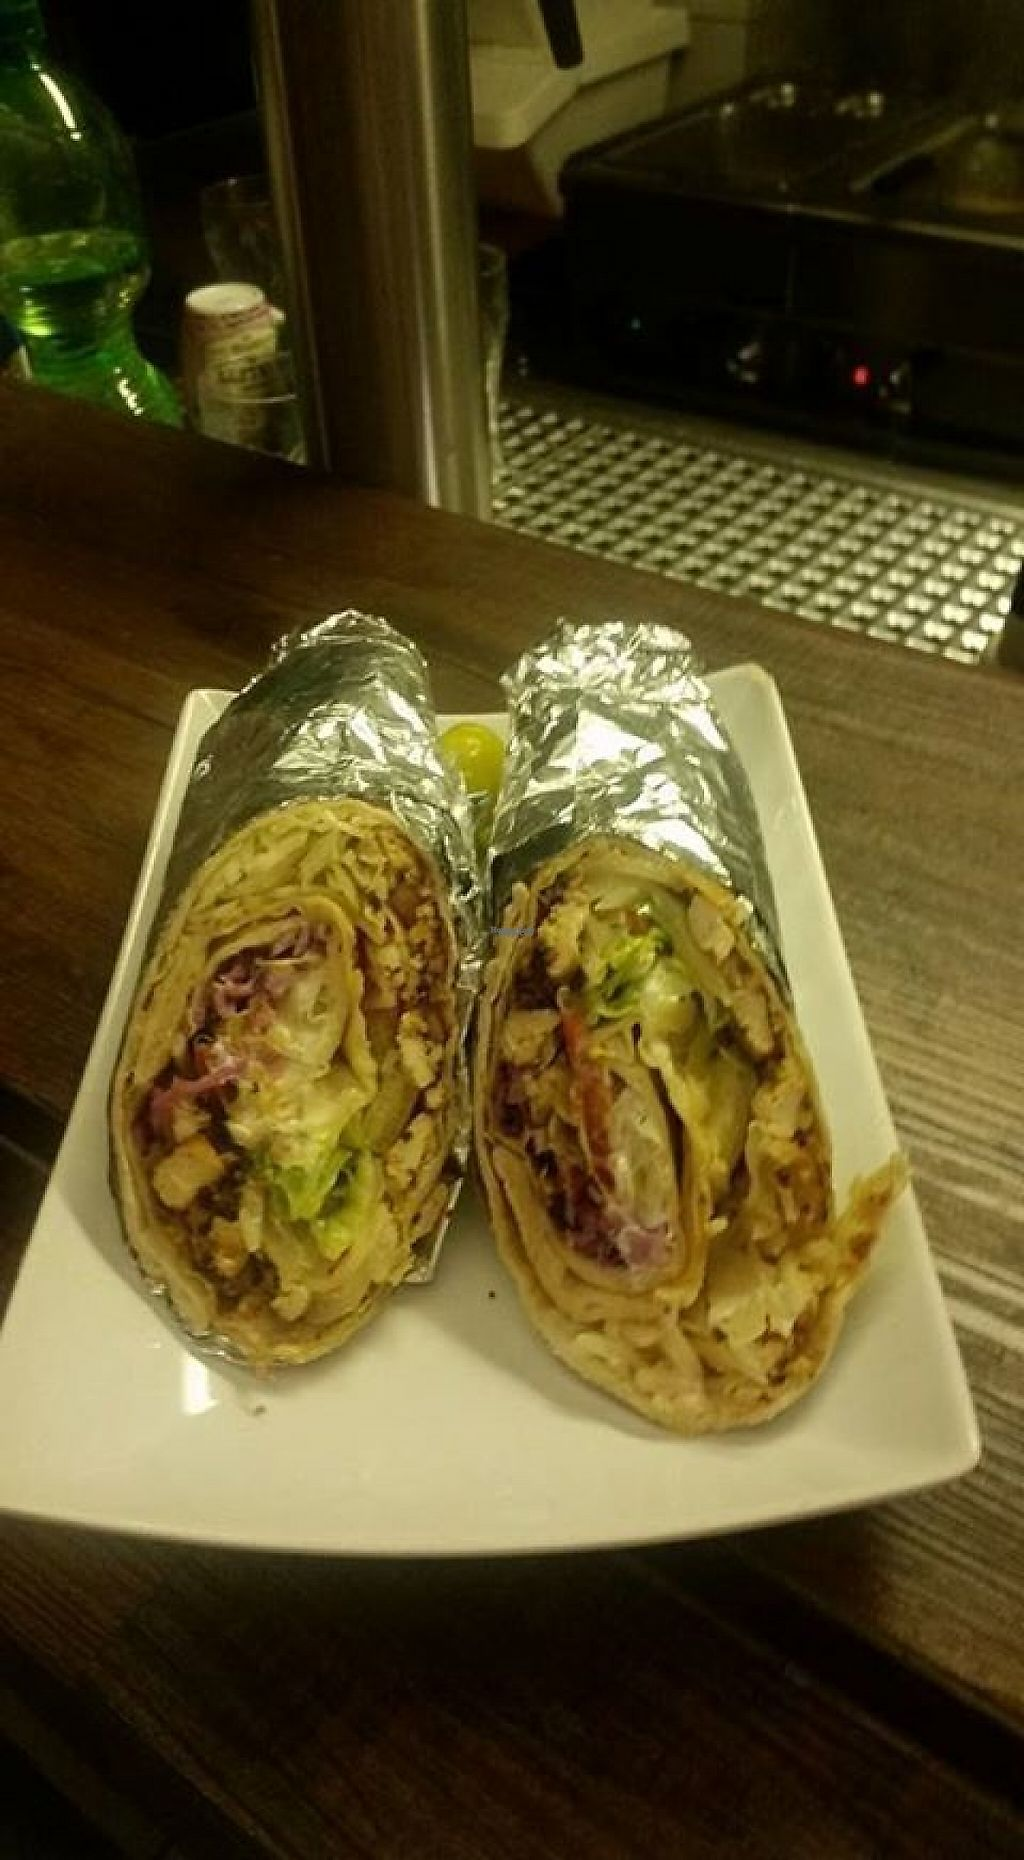 "Photo of Kapadoyka   by <a href=""/members/profile/community5"">community5</a> <br/>Vegan 'chicken' rolls <br/> March 24, 2017  - <a href='/contact/abuse/image/89129/240356'>Report</a>"